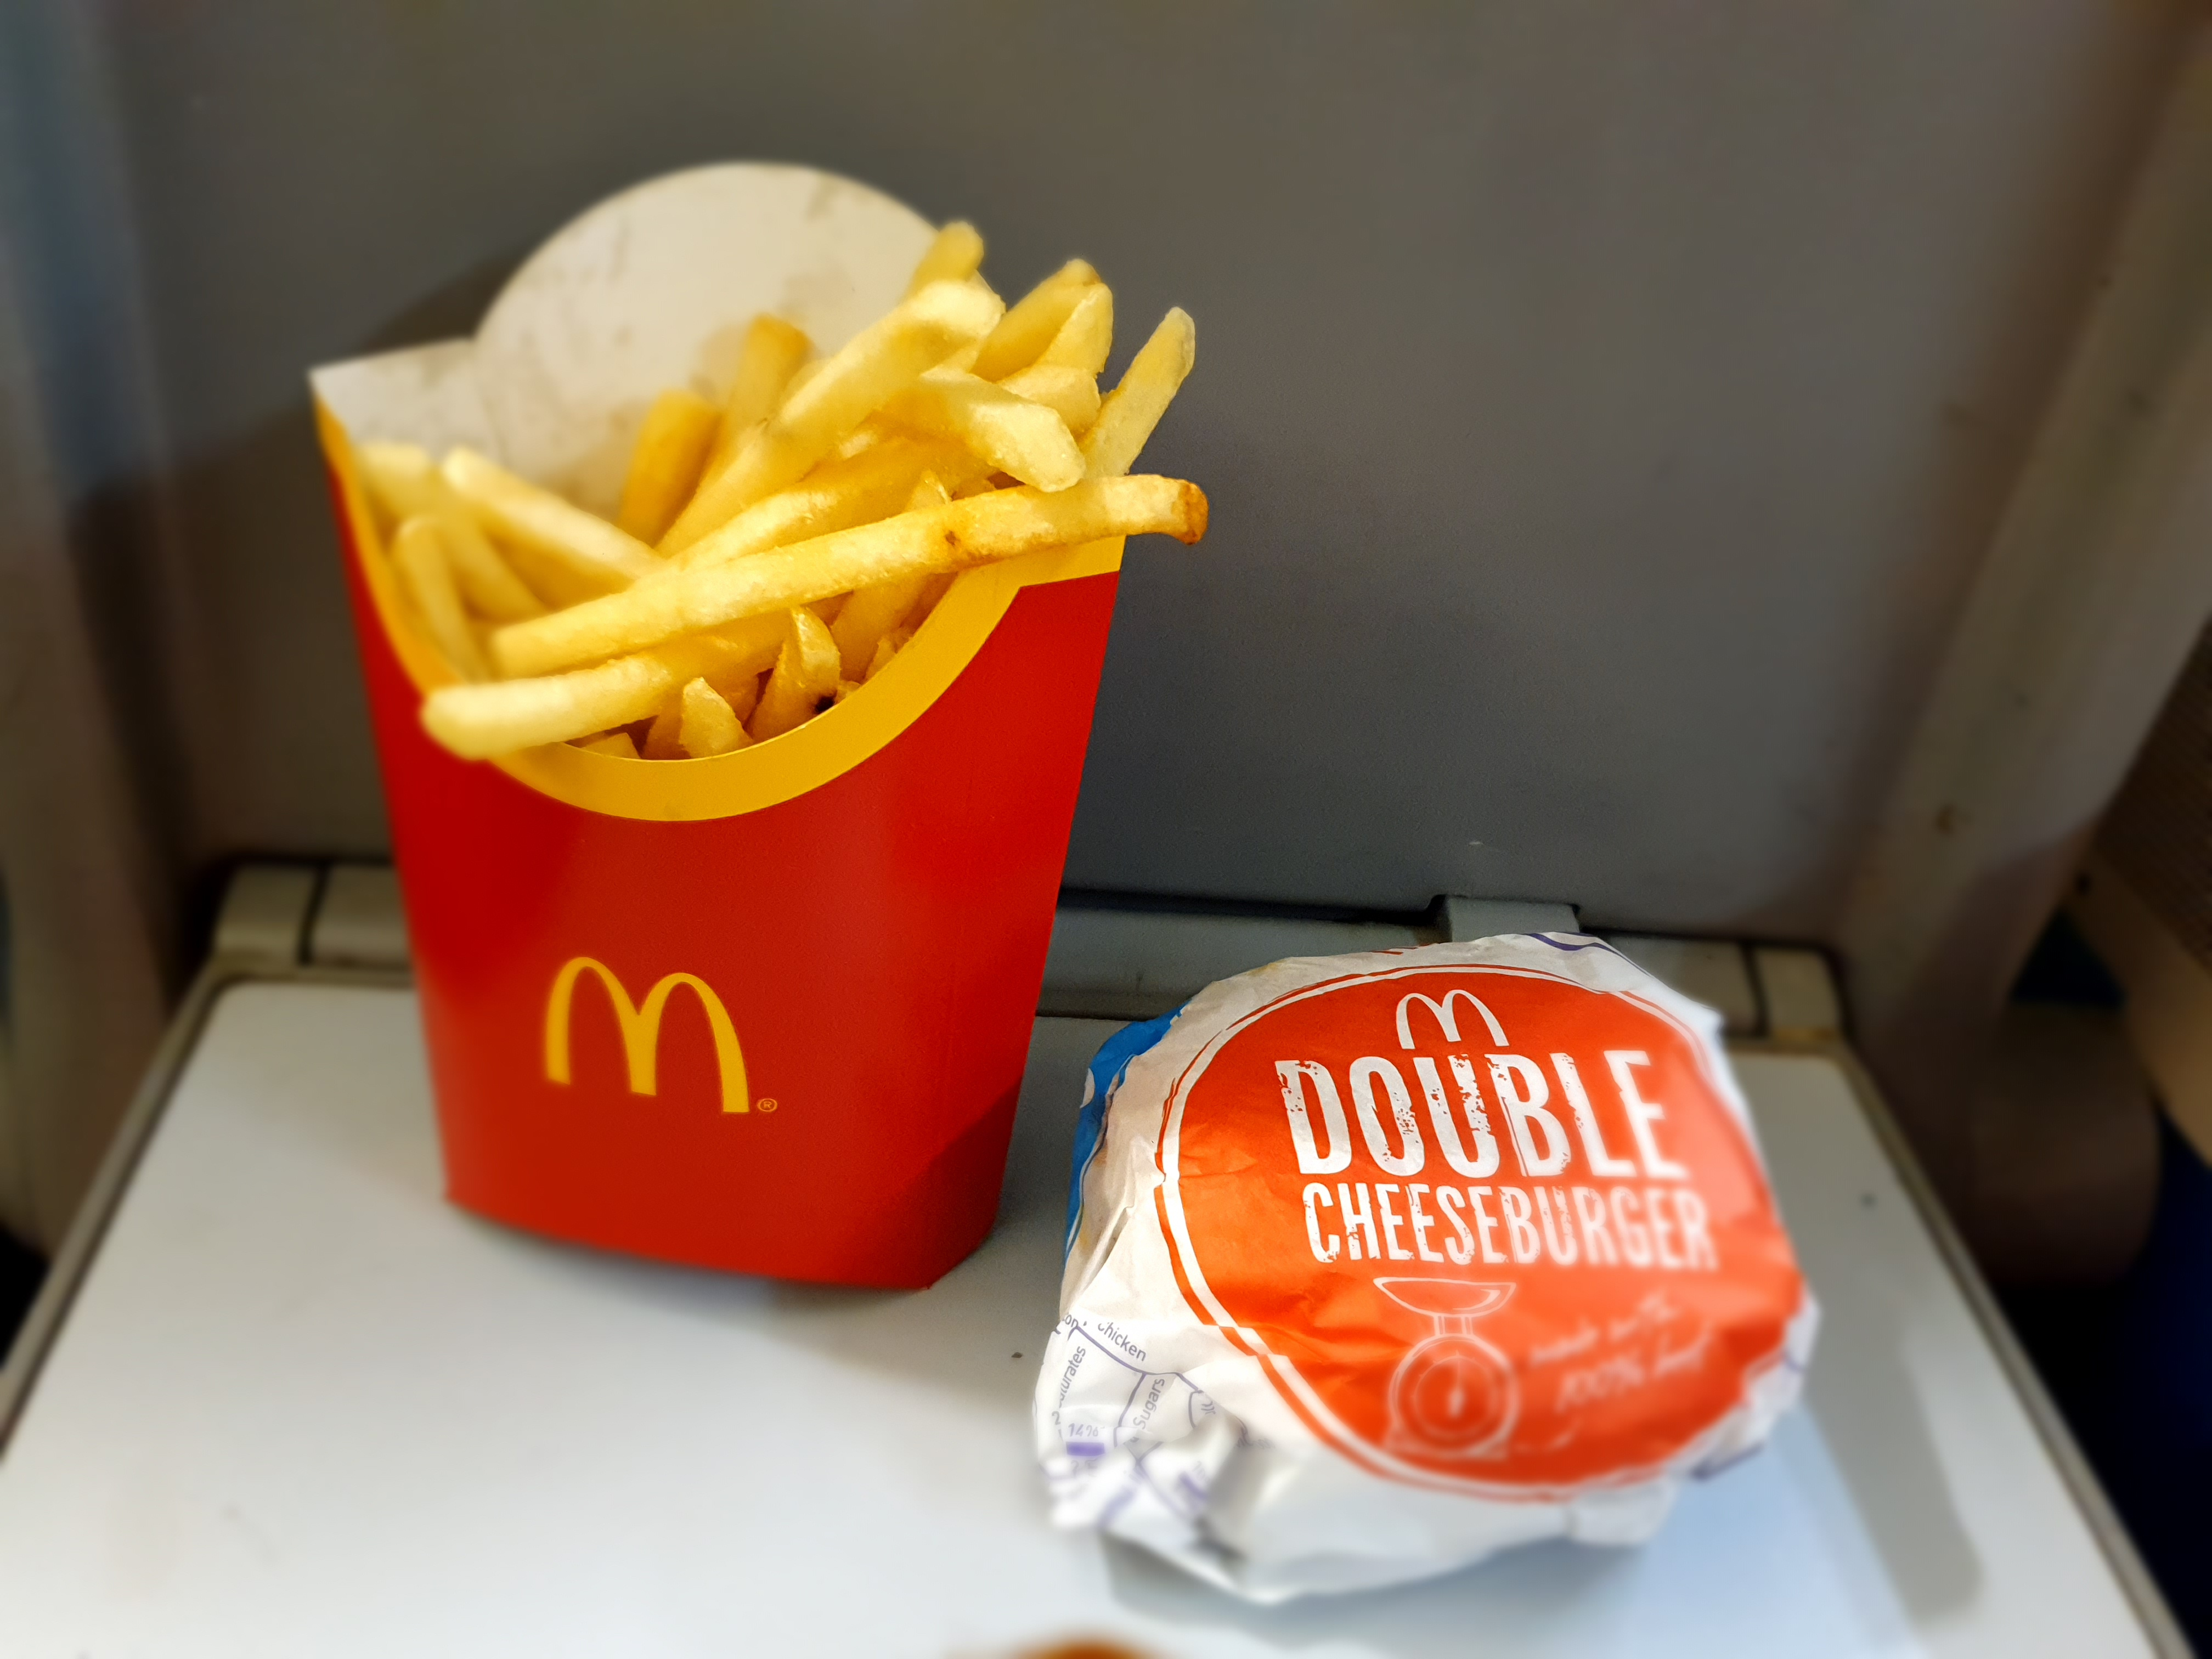 McDonald's fries and double cheeseburger